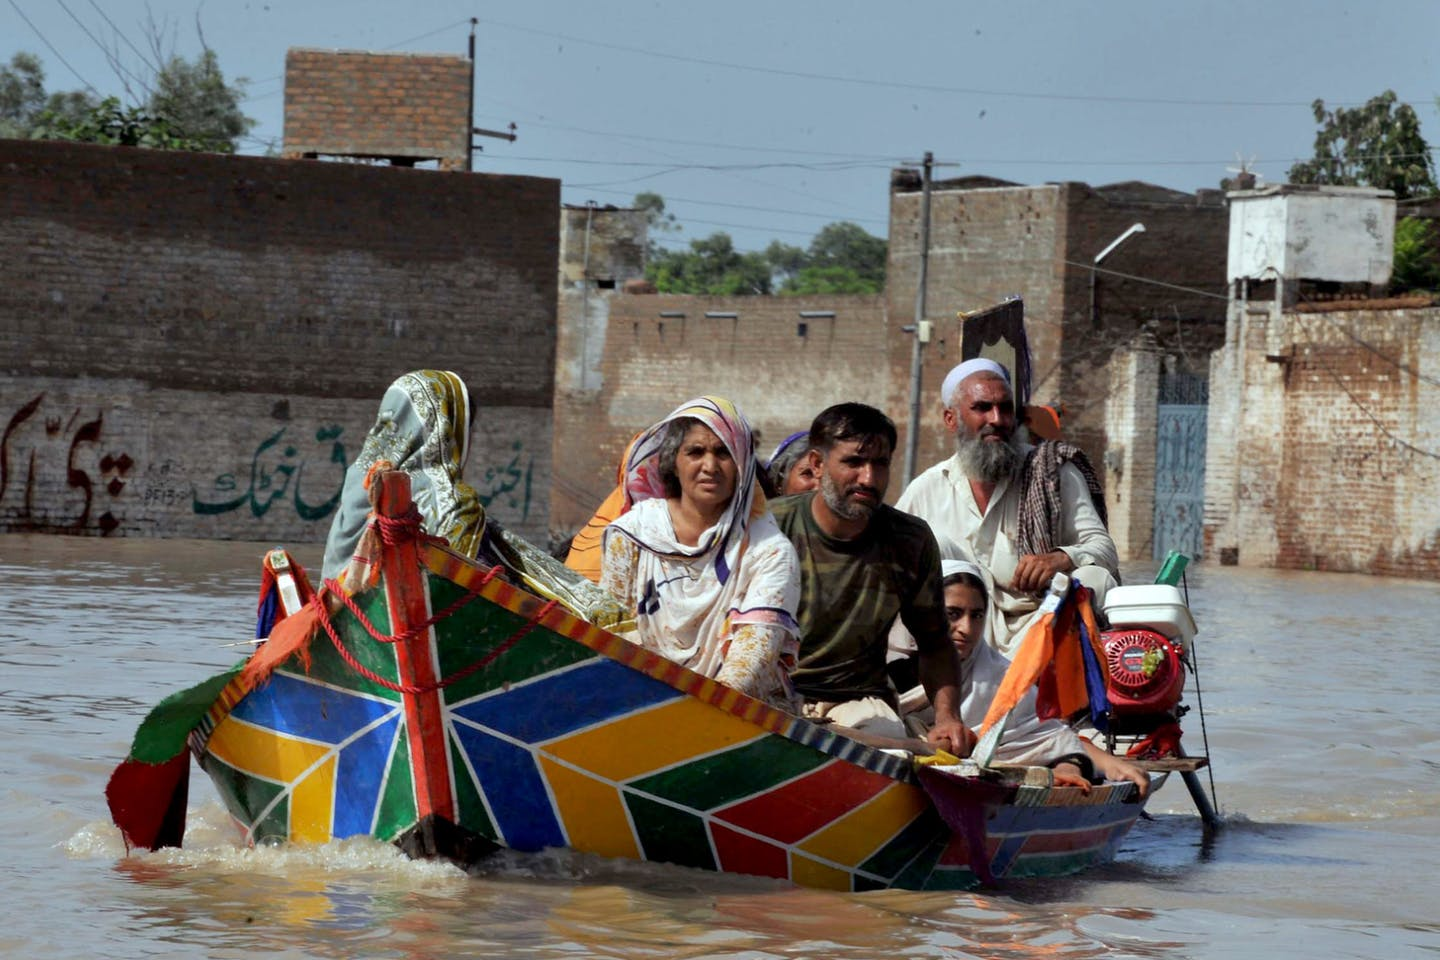 Family escaping floods in Pakistan